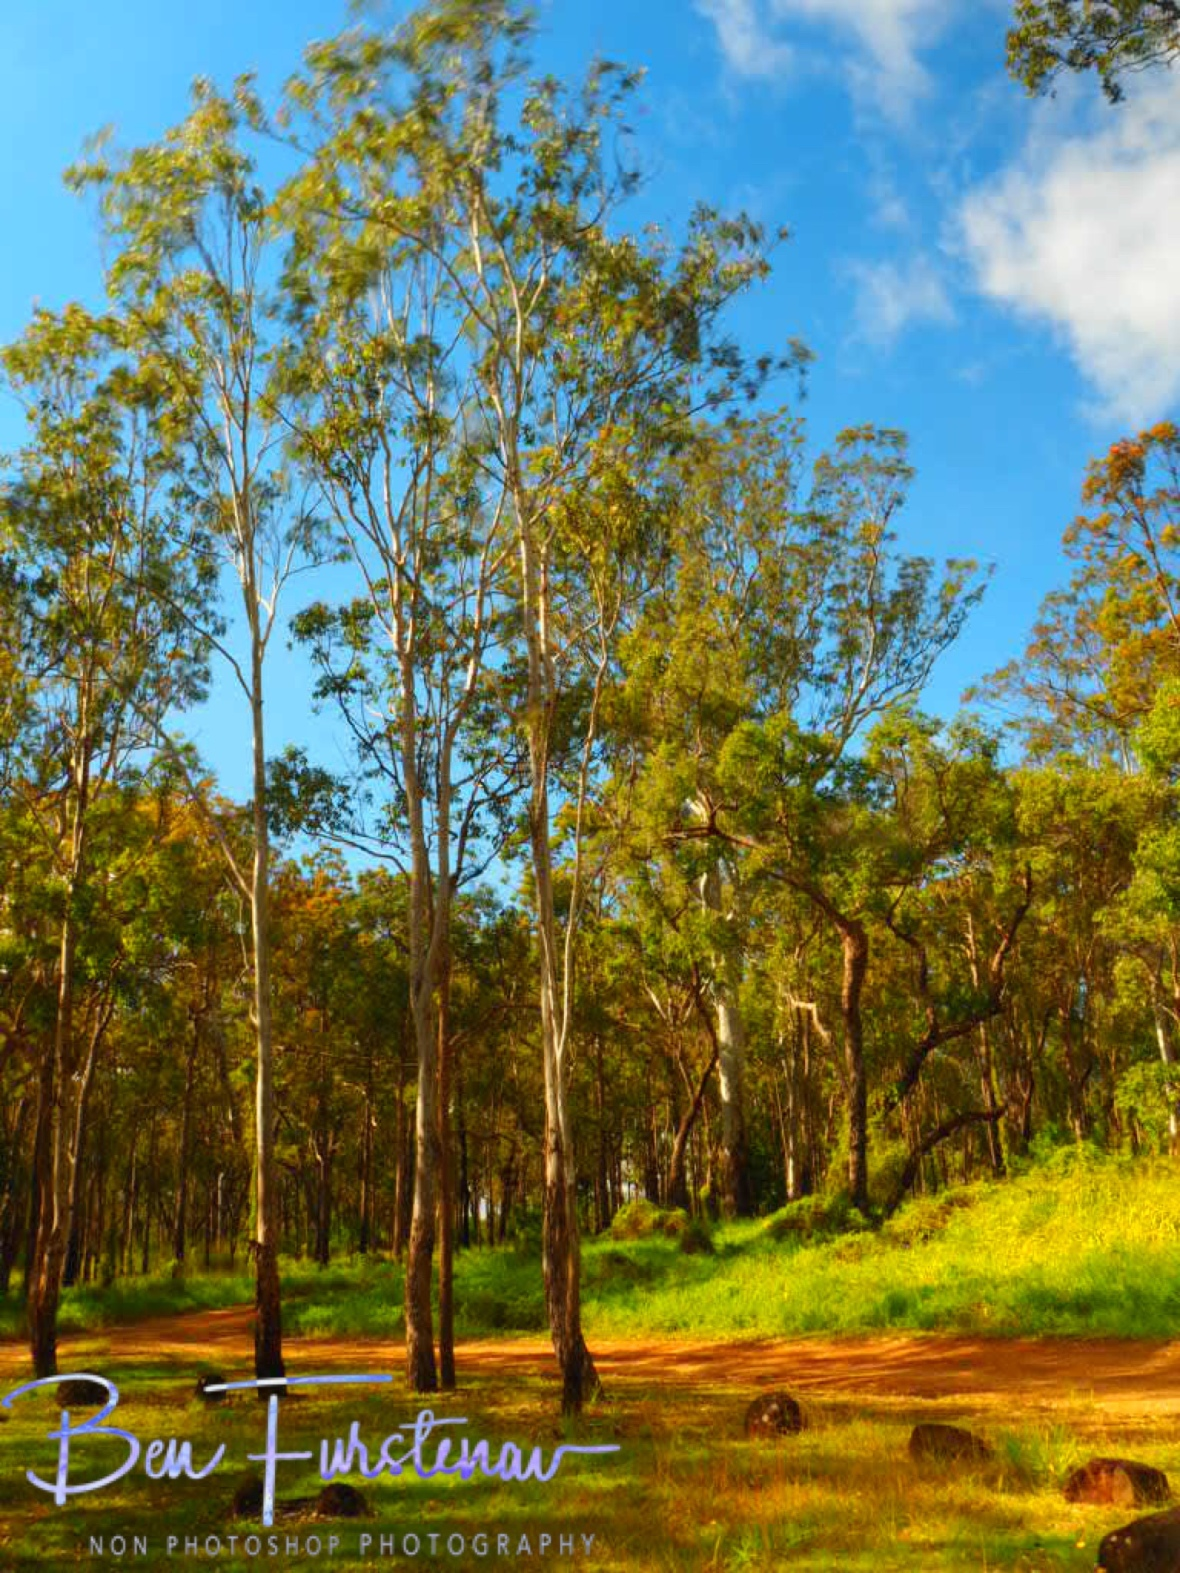 Eucalyptus at the carpark, Atherton Tablelands, Far North Queensland, Australia